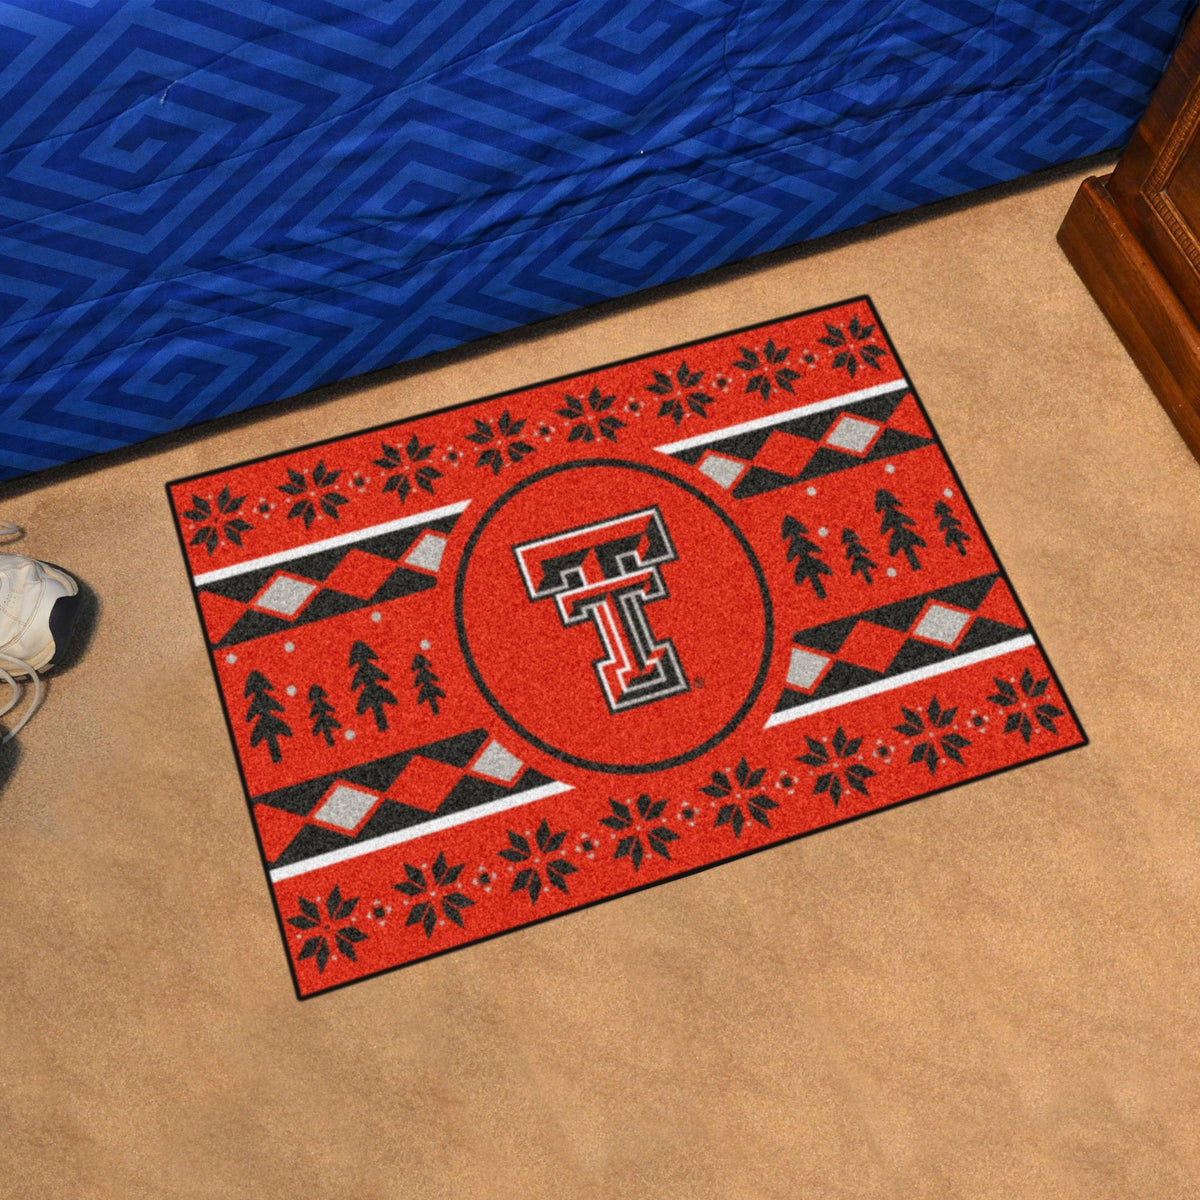 Collegiate - Holiday Sweater Starter Mat Collegiate Mats, Rectangular Mats, Holiday Sweater Starter Mat, Collegiate, Home Fan Mats Texas Tech